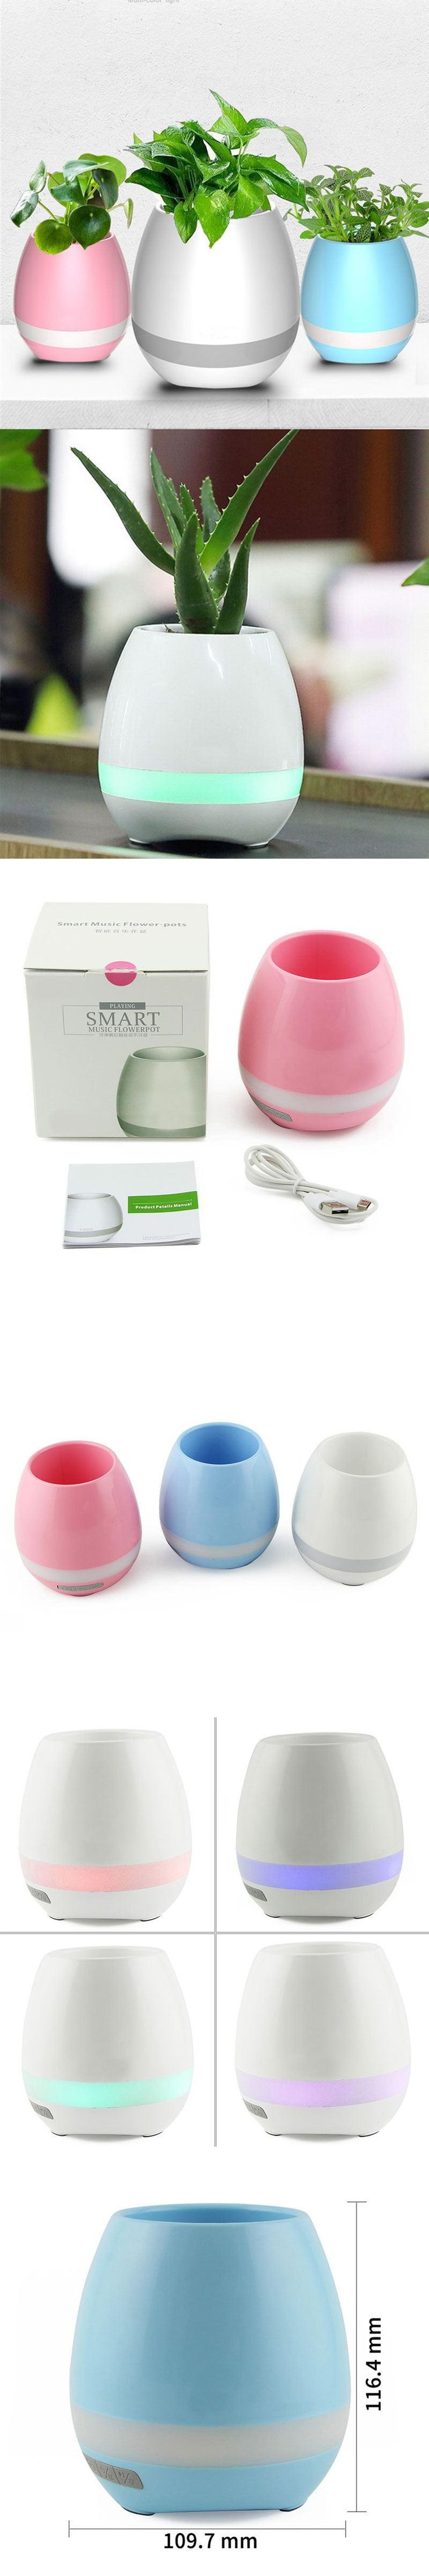 Portable Creative Wireless  Bluetooth Speaker Flower Pot with Colorful Night Light  MiNi Fidget Speakers for Iphone 7 Plus Phone